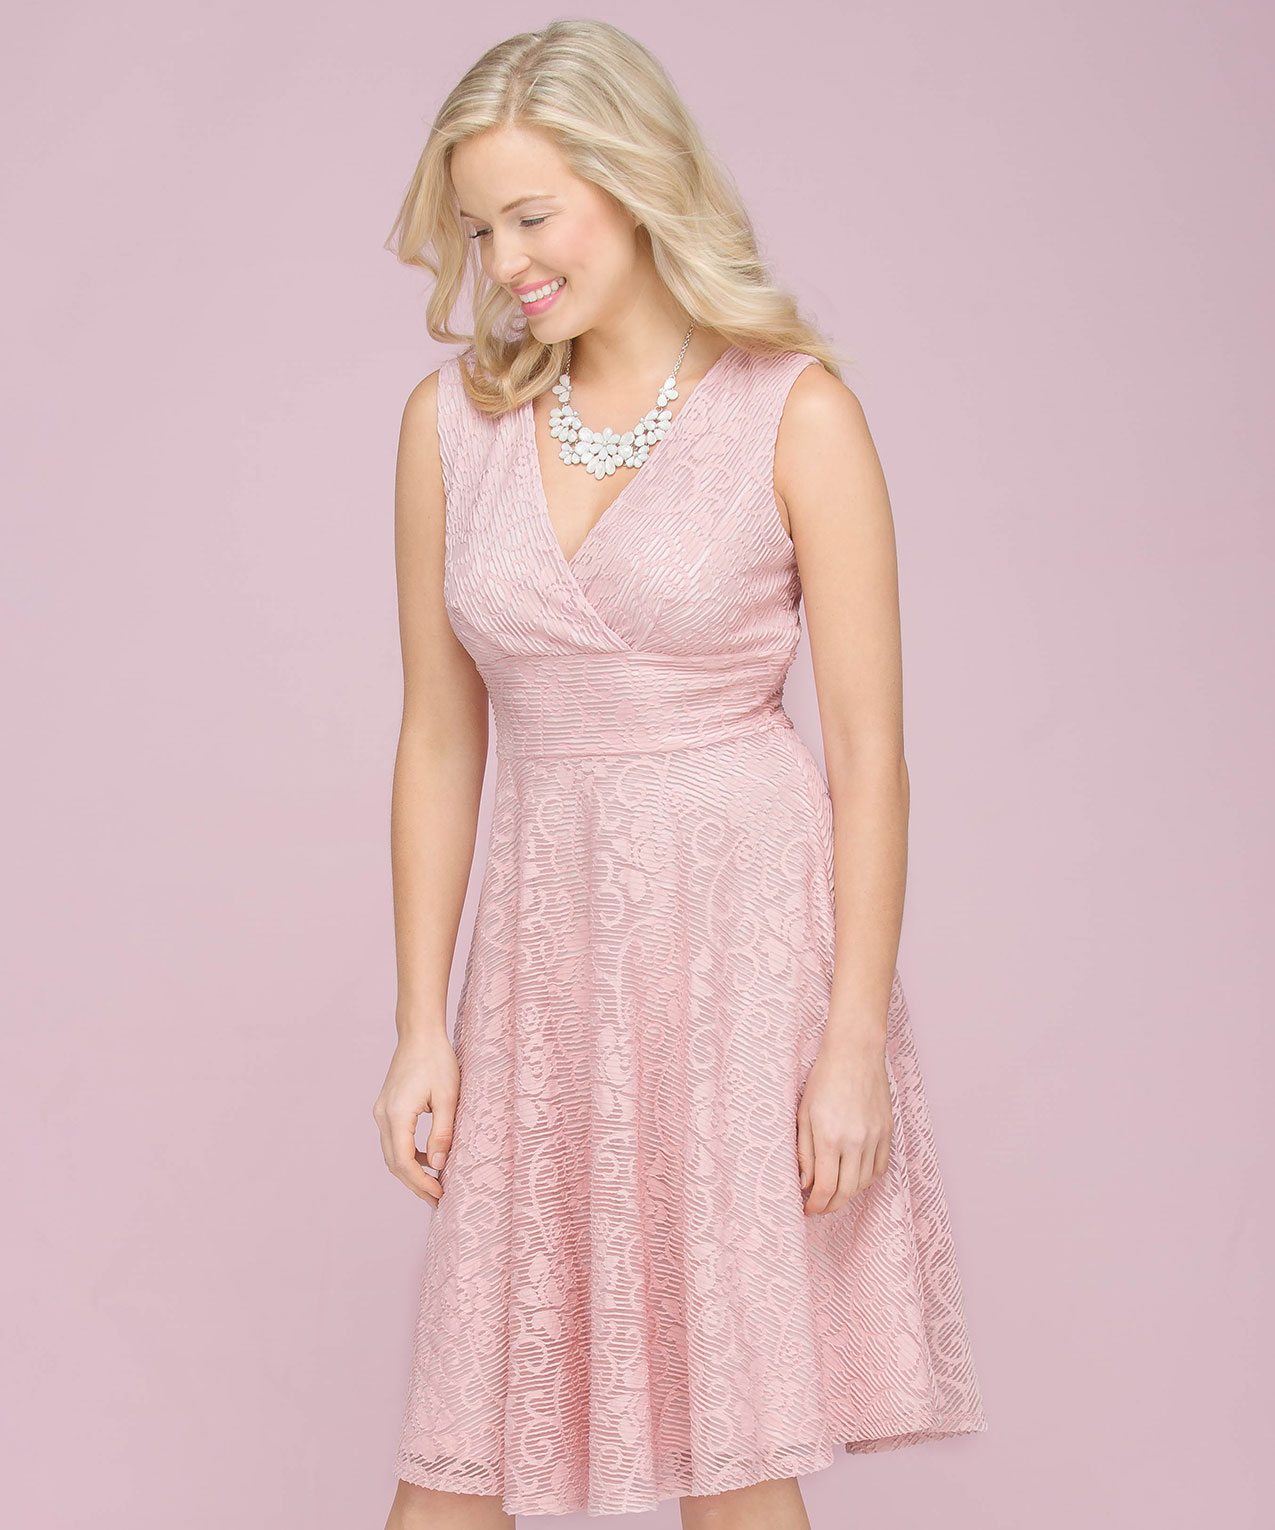 Pretty In Pink Dress | Rickis